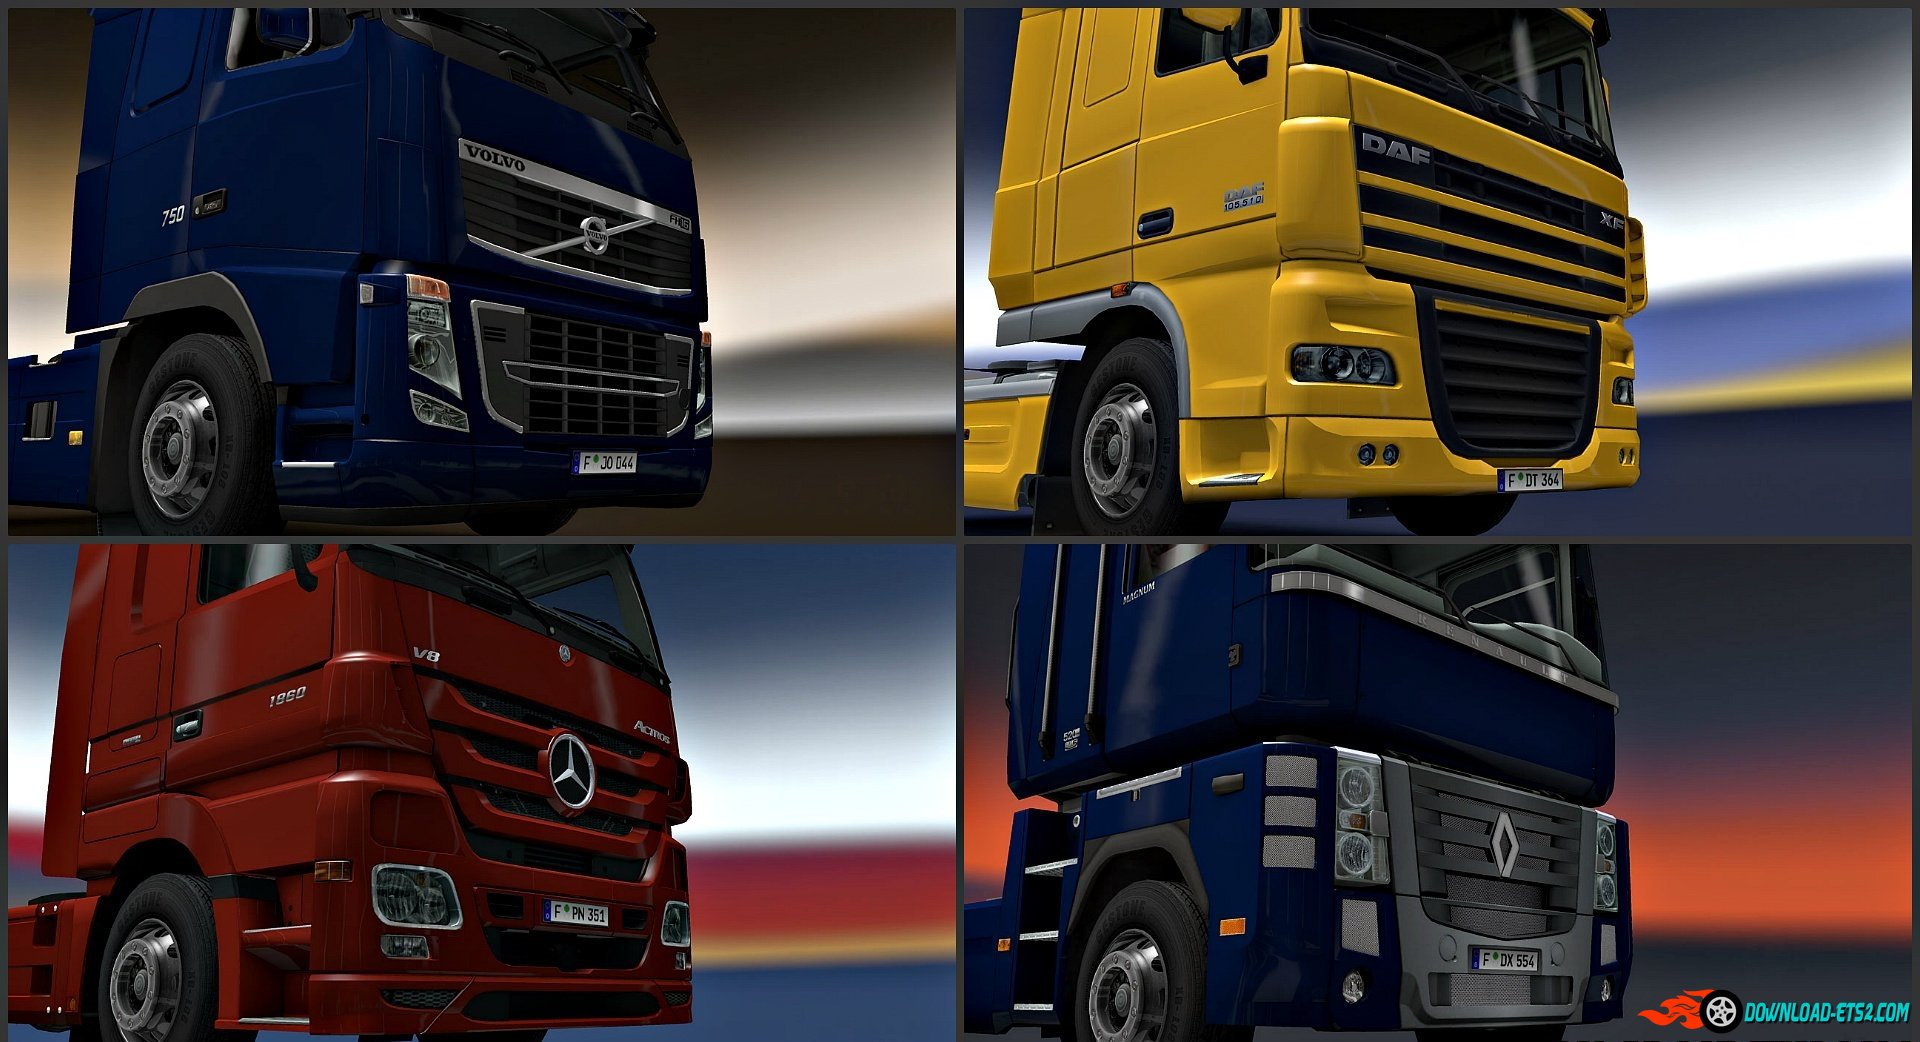 REAL EMBLEM TRUCKS by pete379jp